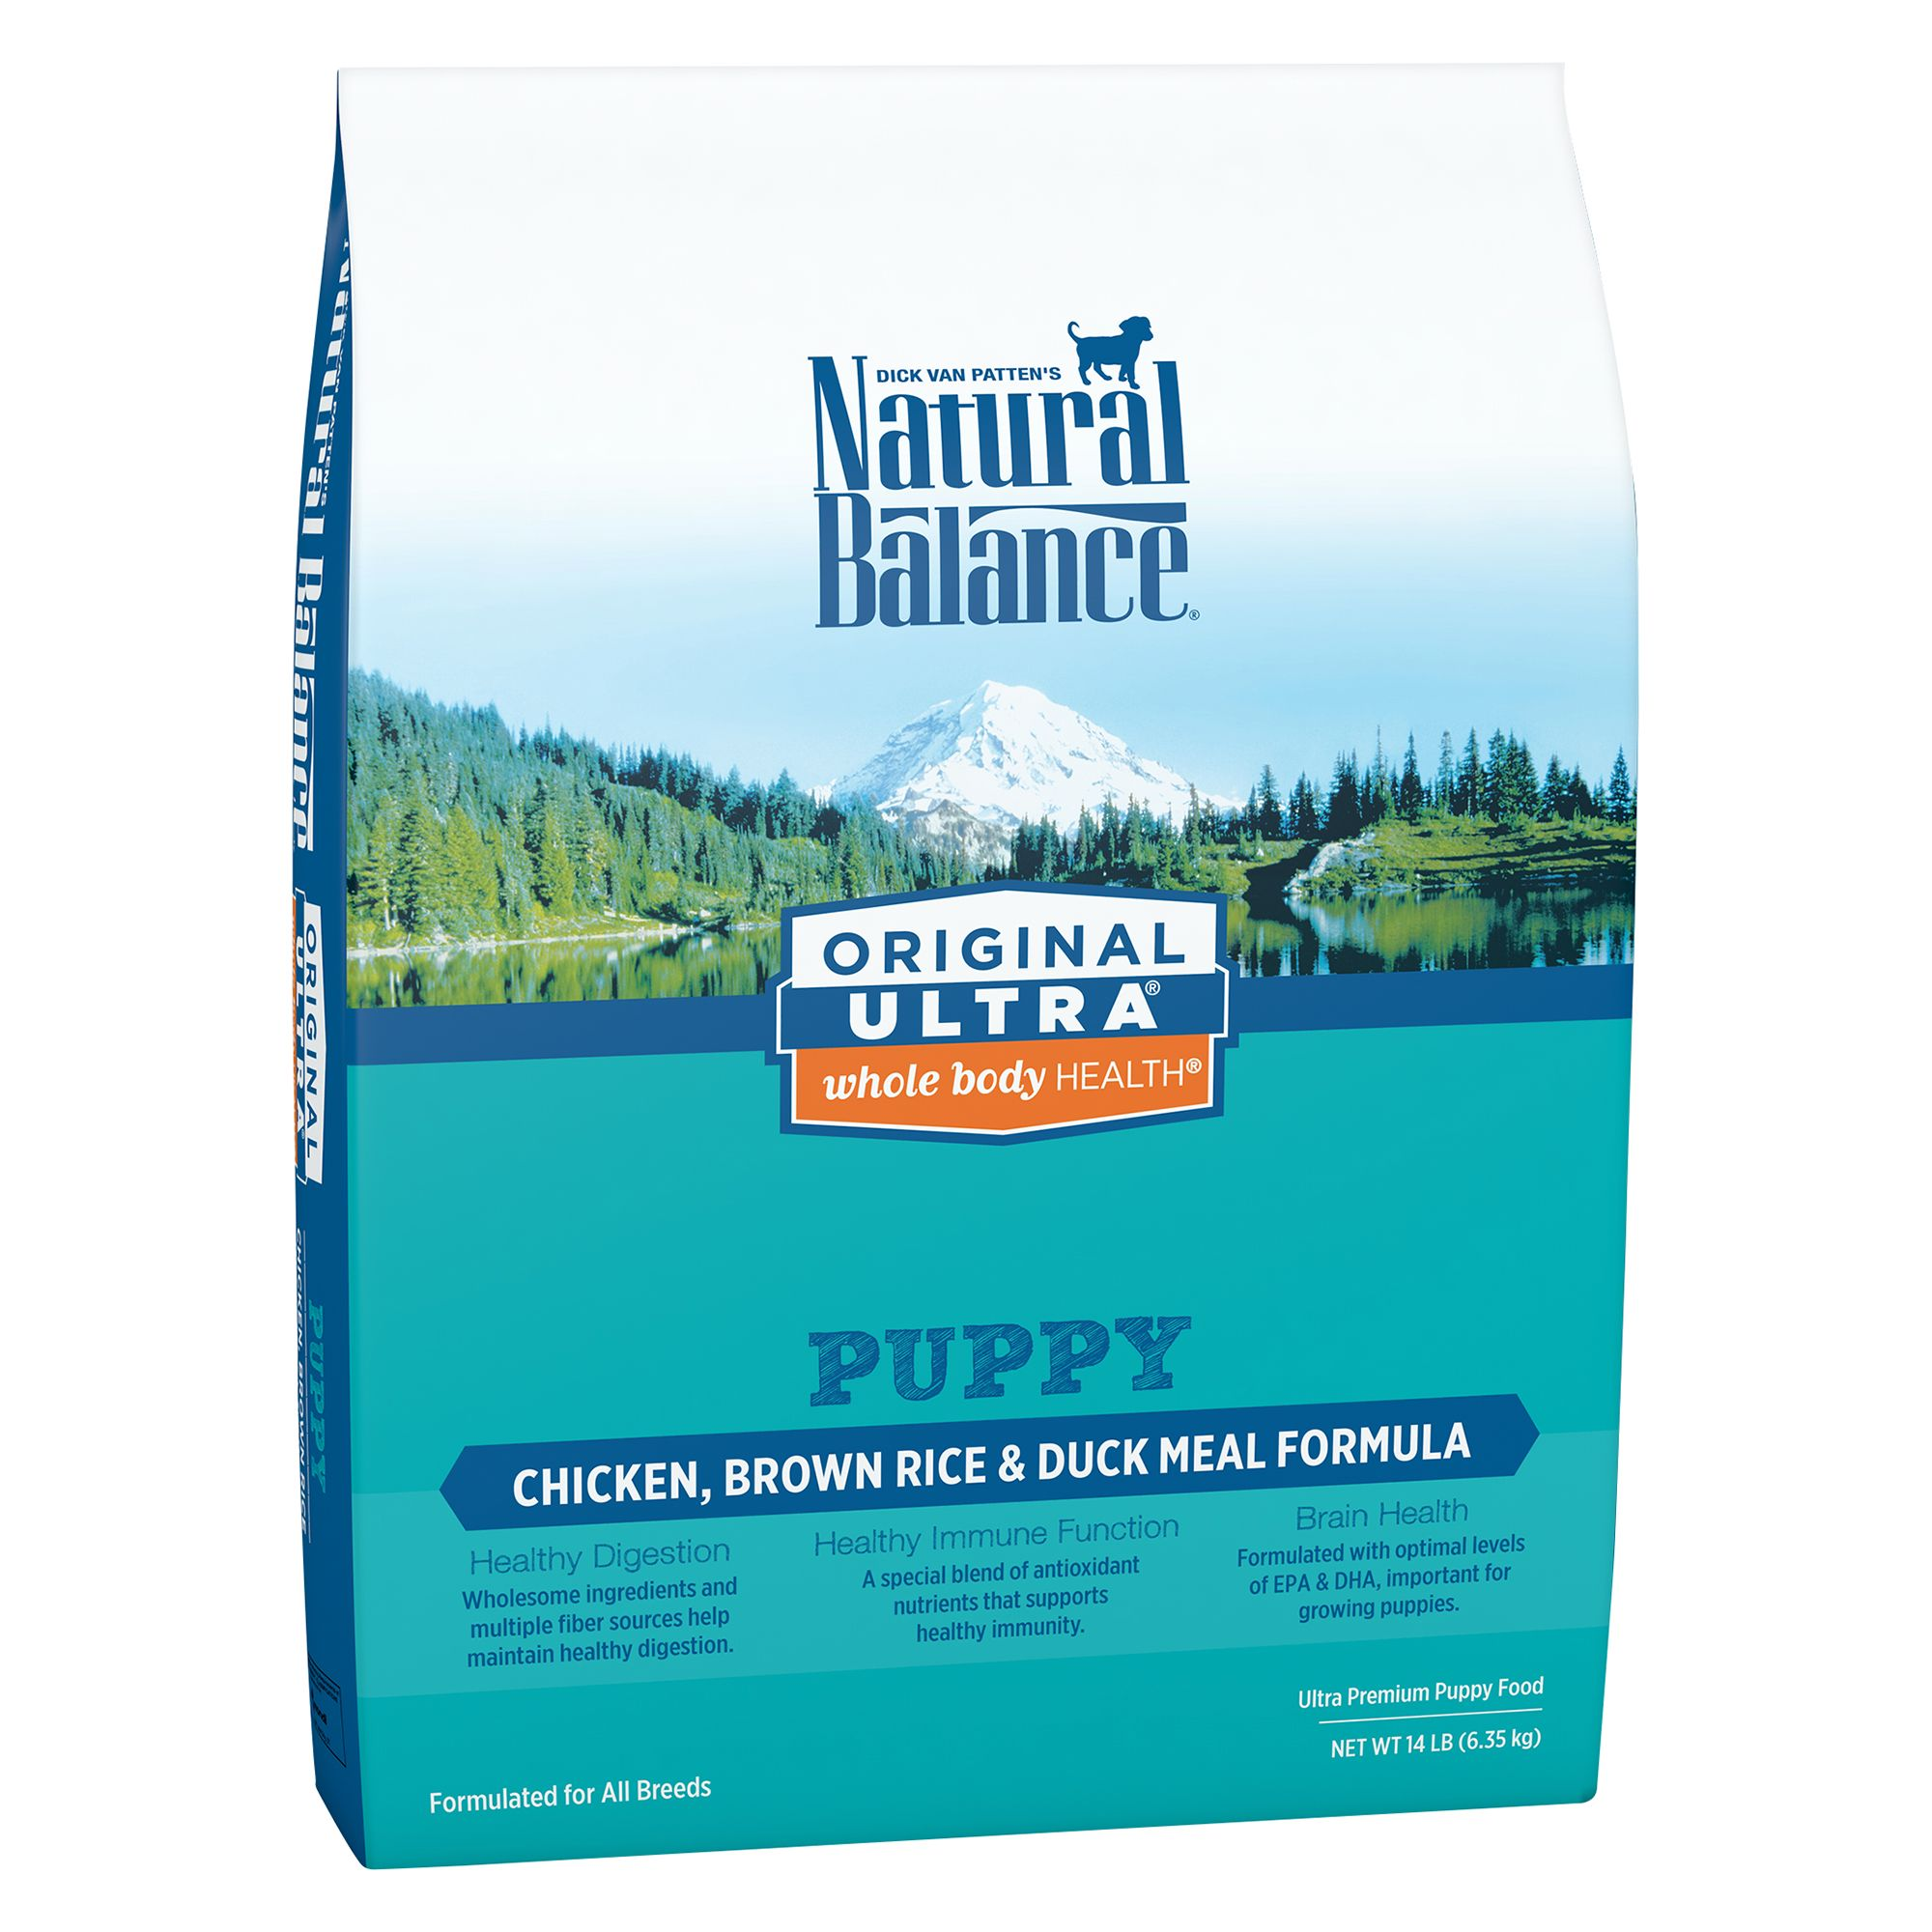 Natural Balance Original Ultra Whole Body Health Puppy Food- Gluten Free, Chicken, Brown Rice and Duck size: 14 Lb, Kibble